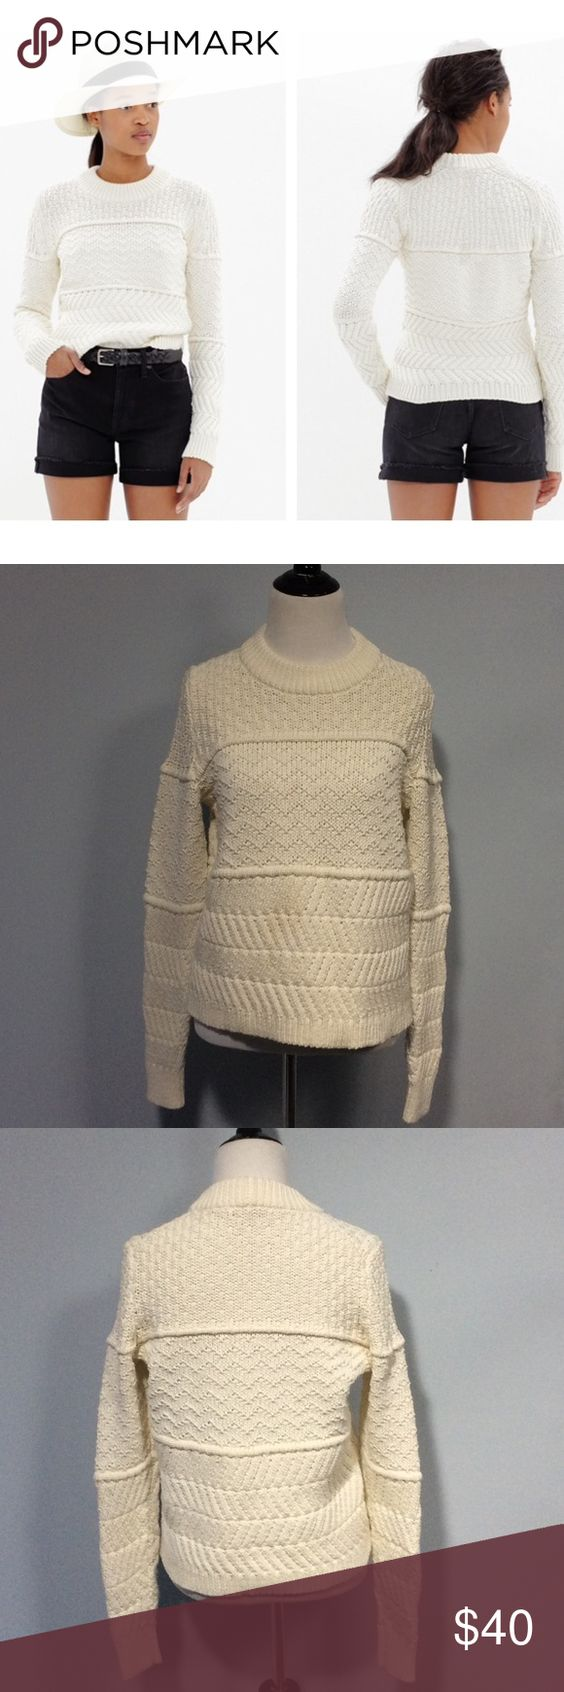 "🐞 Madewell Station Pullover Knit Sweater Small Super soft and chunky knit sweater made of a special yarn blend that makes it super light weight. The color is off-white/ivory. The bust measures 19"" across and the length from the shoulder is 22"". EUC Madewell Sweaters Crew & Scoop Necks"